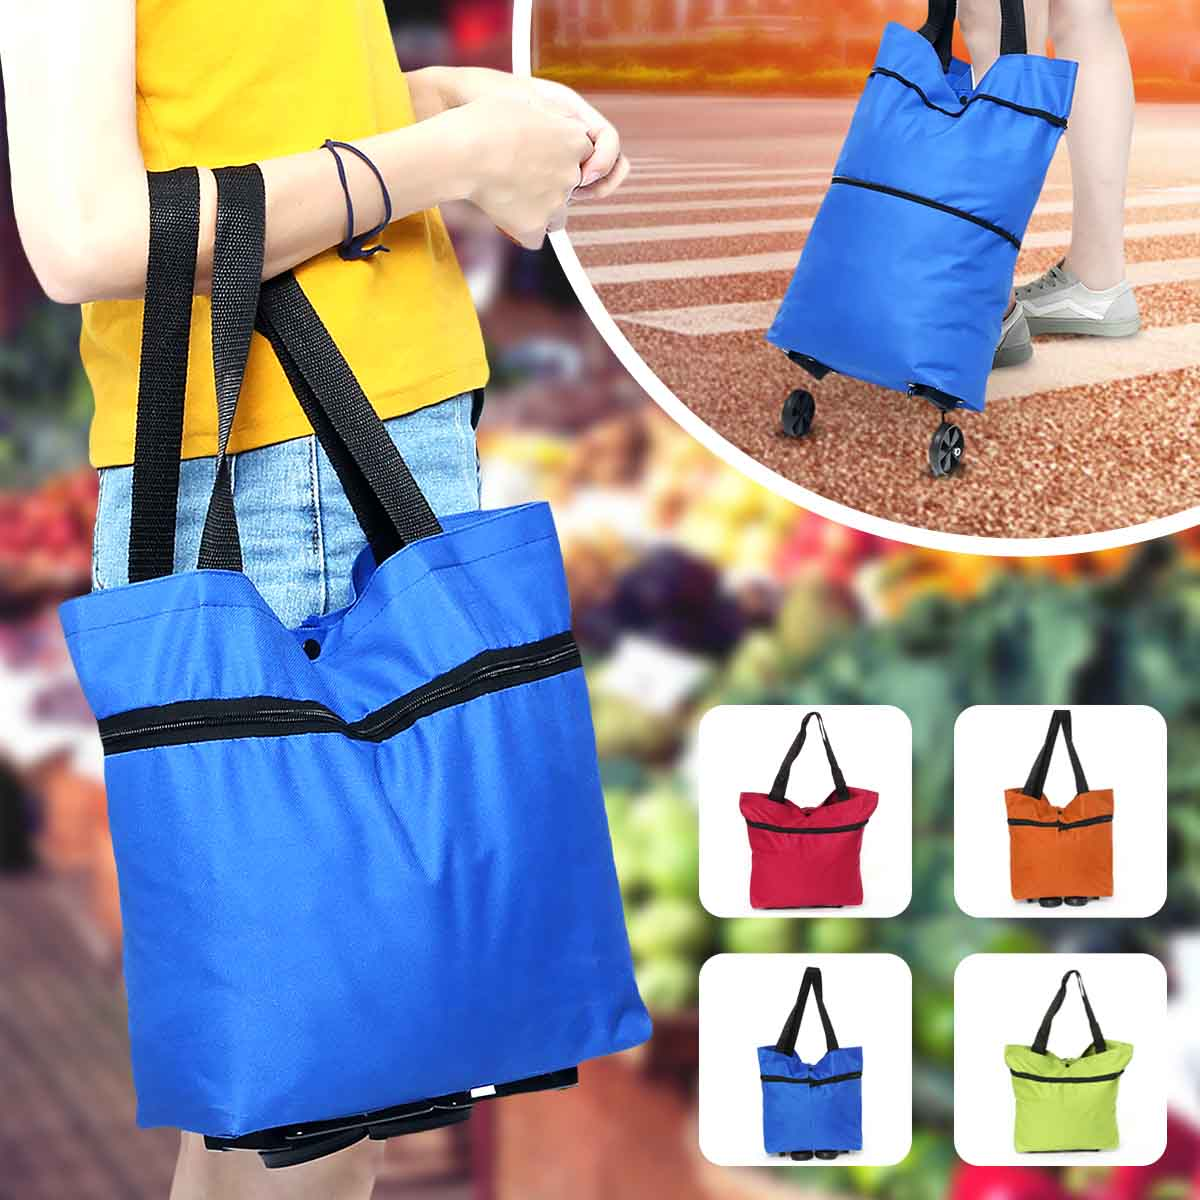 Foldable Women  Colorful Shopping Cart Bag Portable Shopping Trolley Bag With Wheels Foldable Cart Rolling Grocery Supermarket